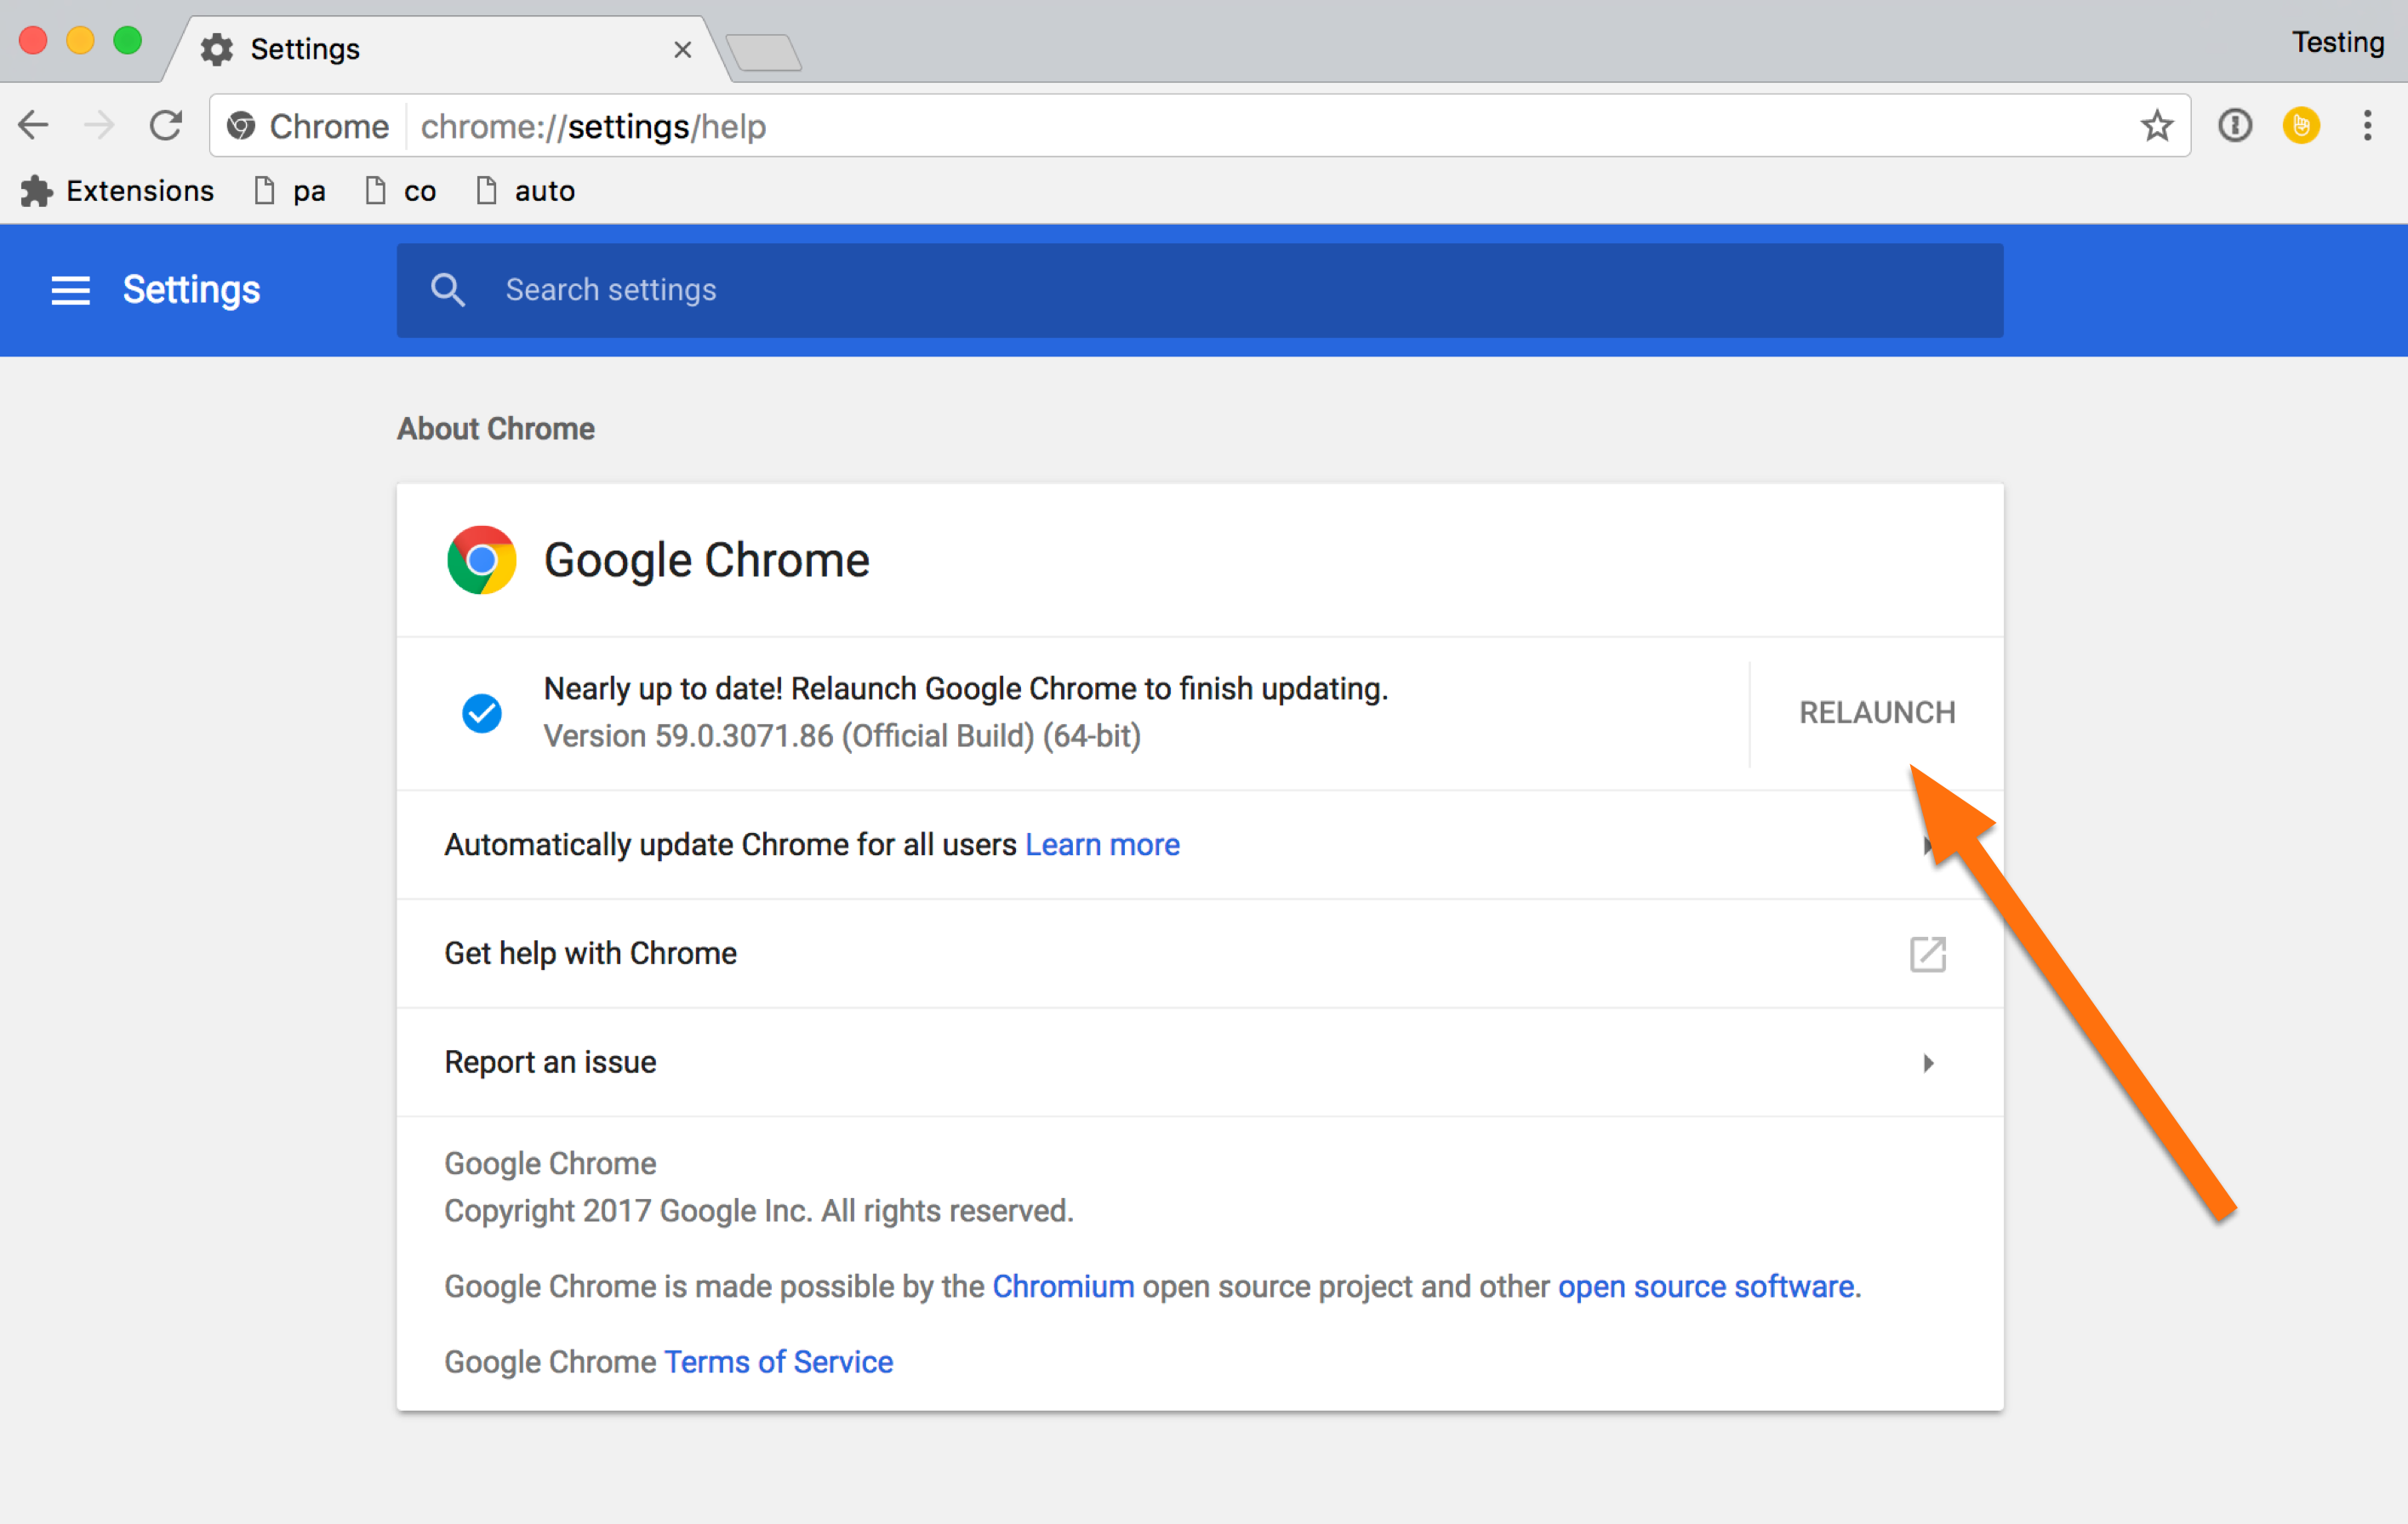 Update the chrome browser lookback support you can double check version after chrome has relaunched ccuart Choice Image